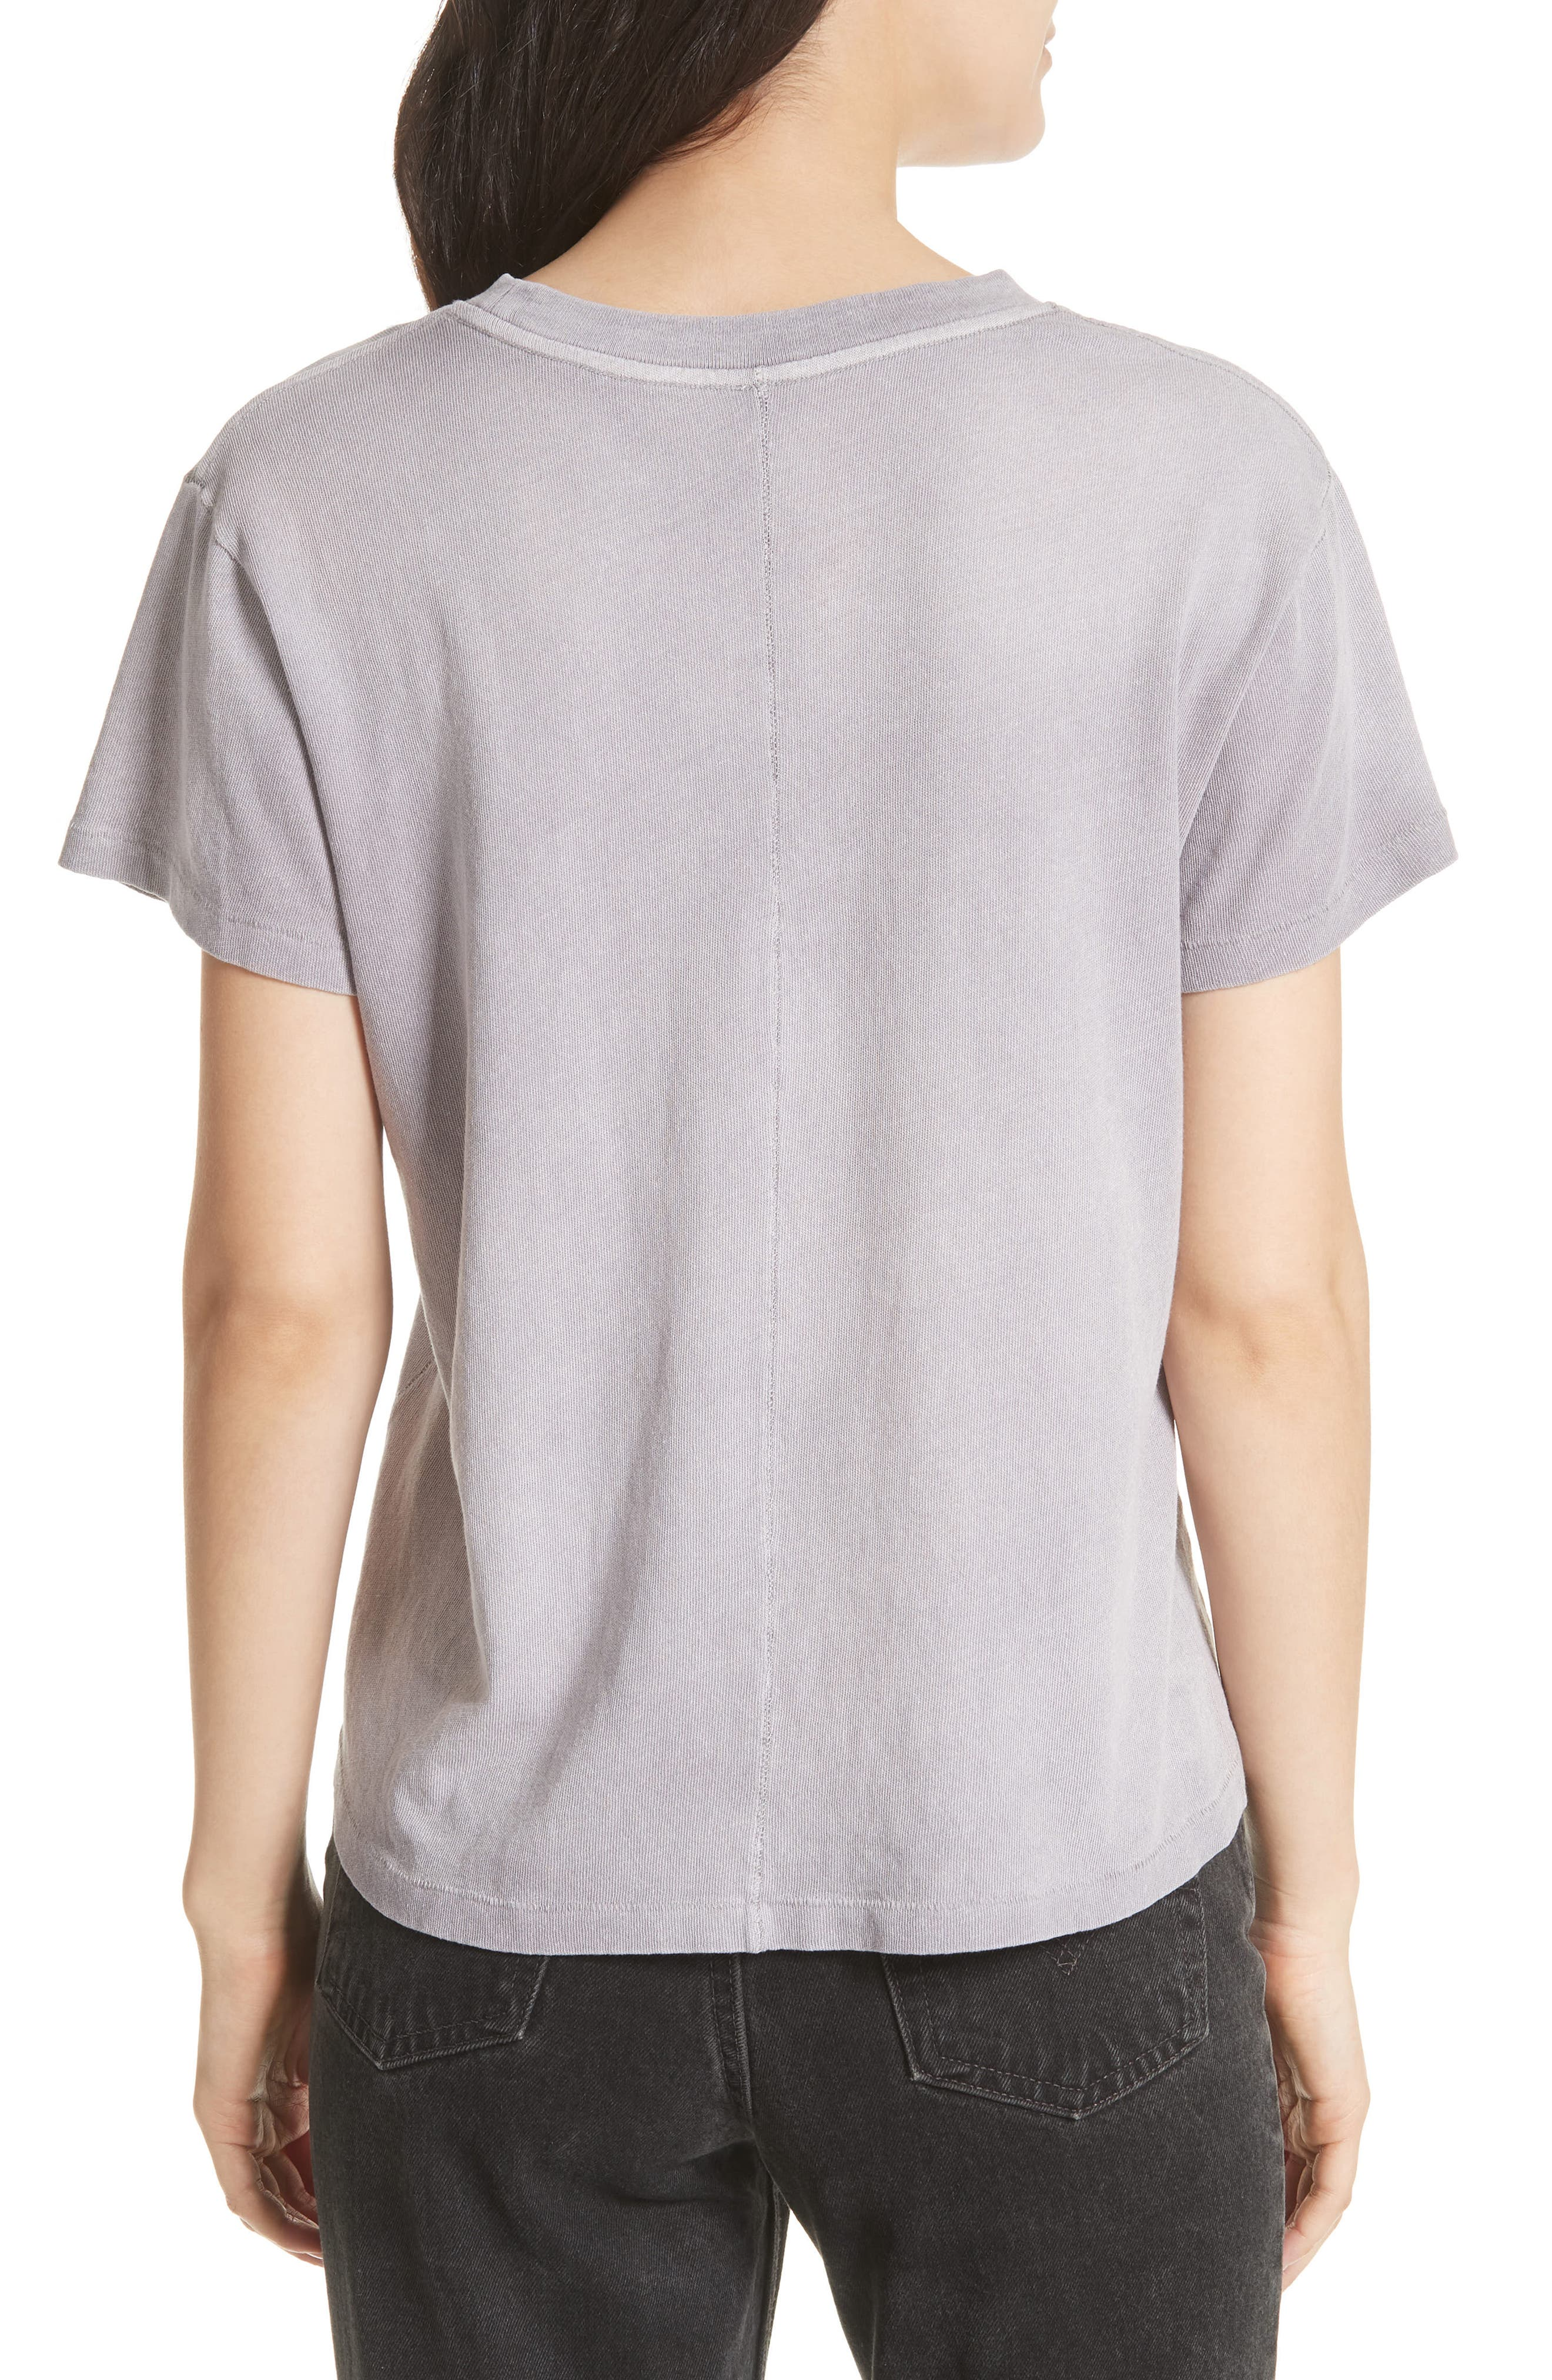 We the People by Free People Vintage Pocket Tee,                             Alternate thumbnail 2, color,                             Lilac